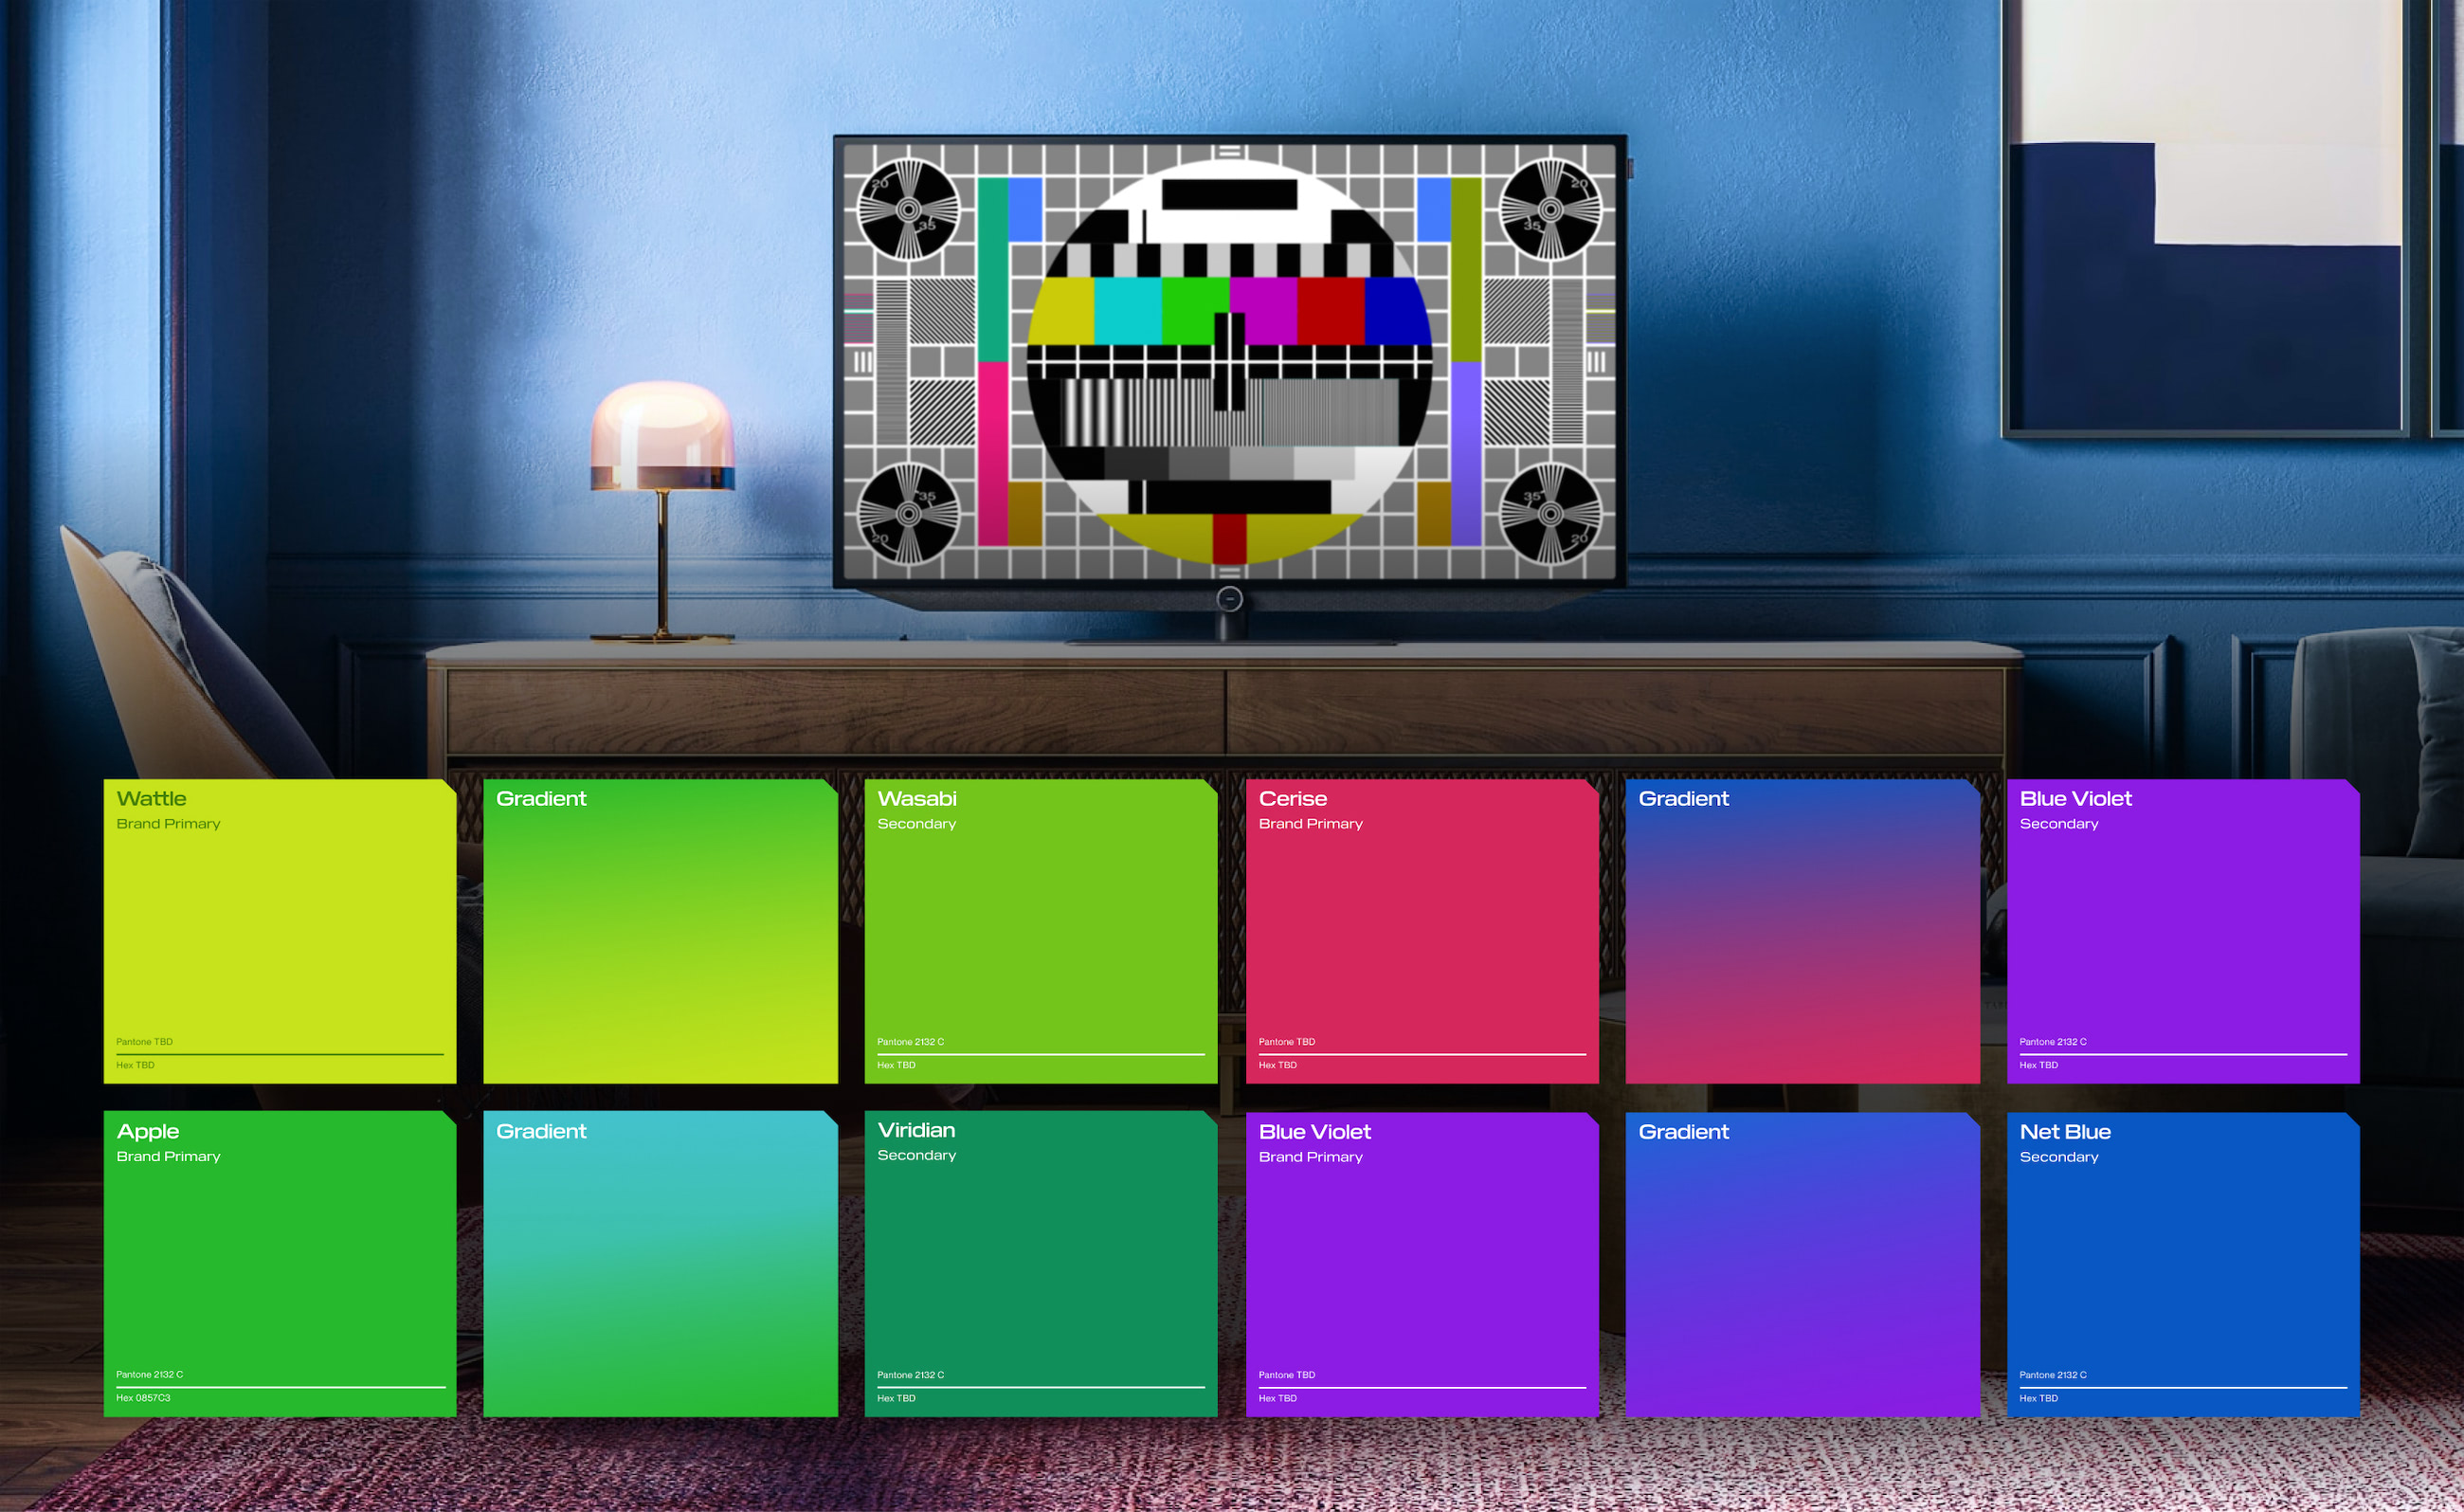 A flat screen TV showing a colorful test screen. Below are a series of colors and gradients we created for LTN that uses this test screen as inspiration.